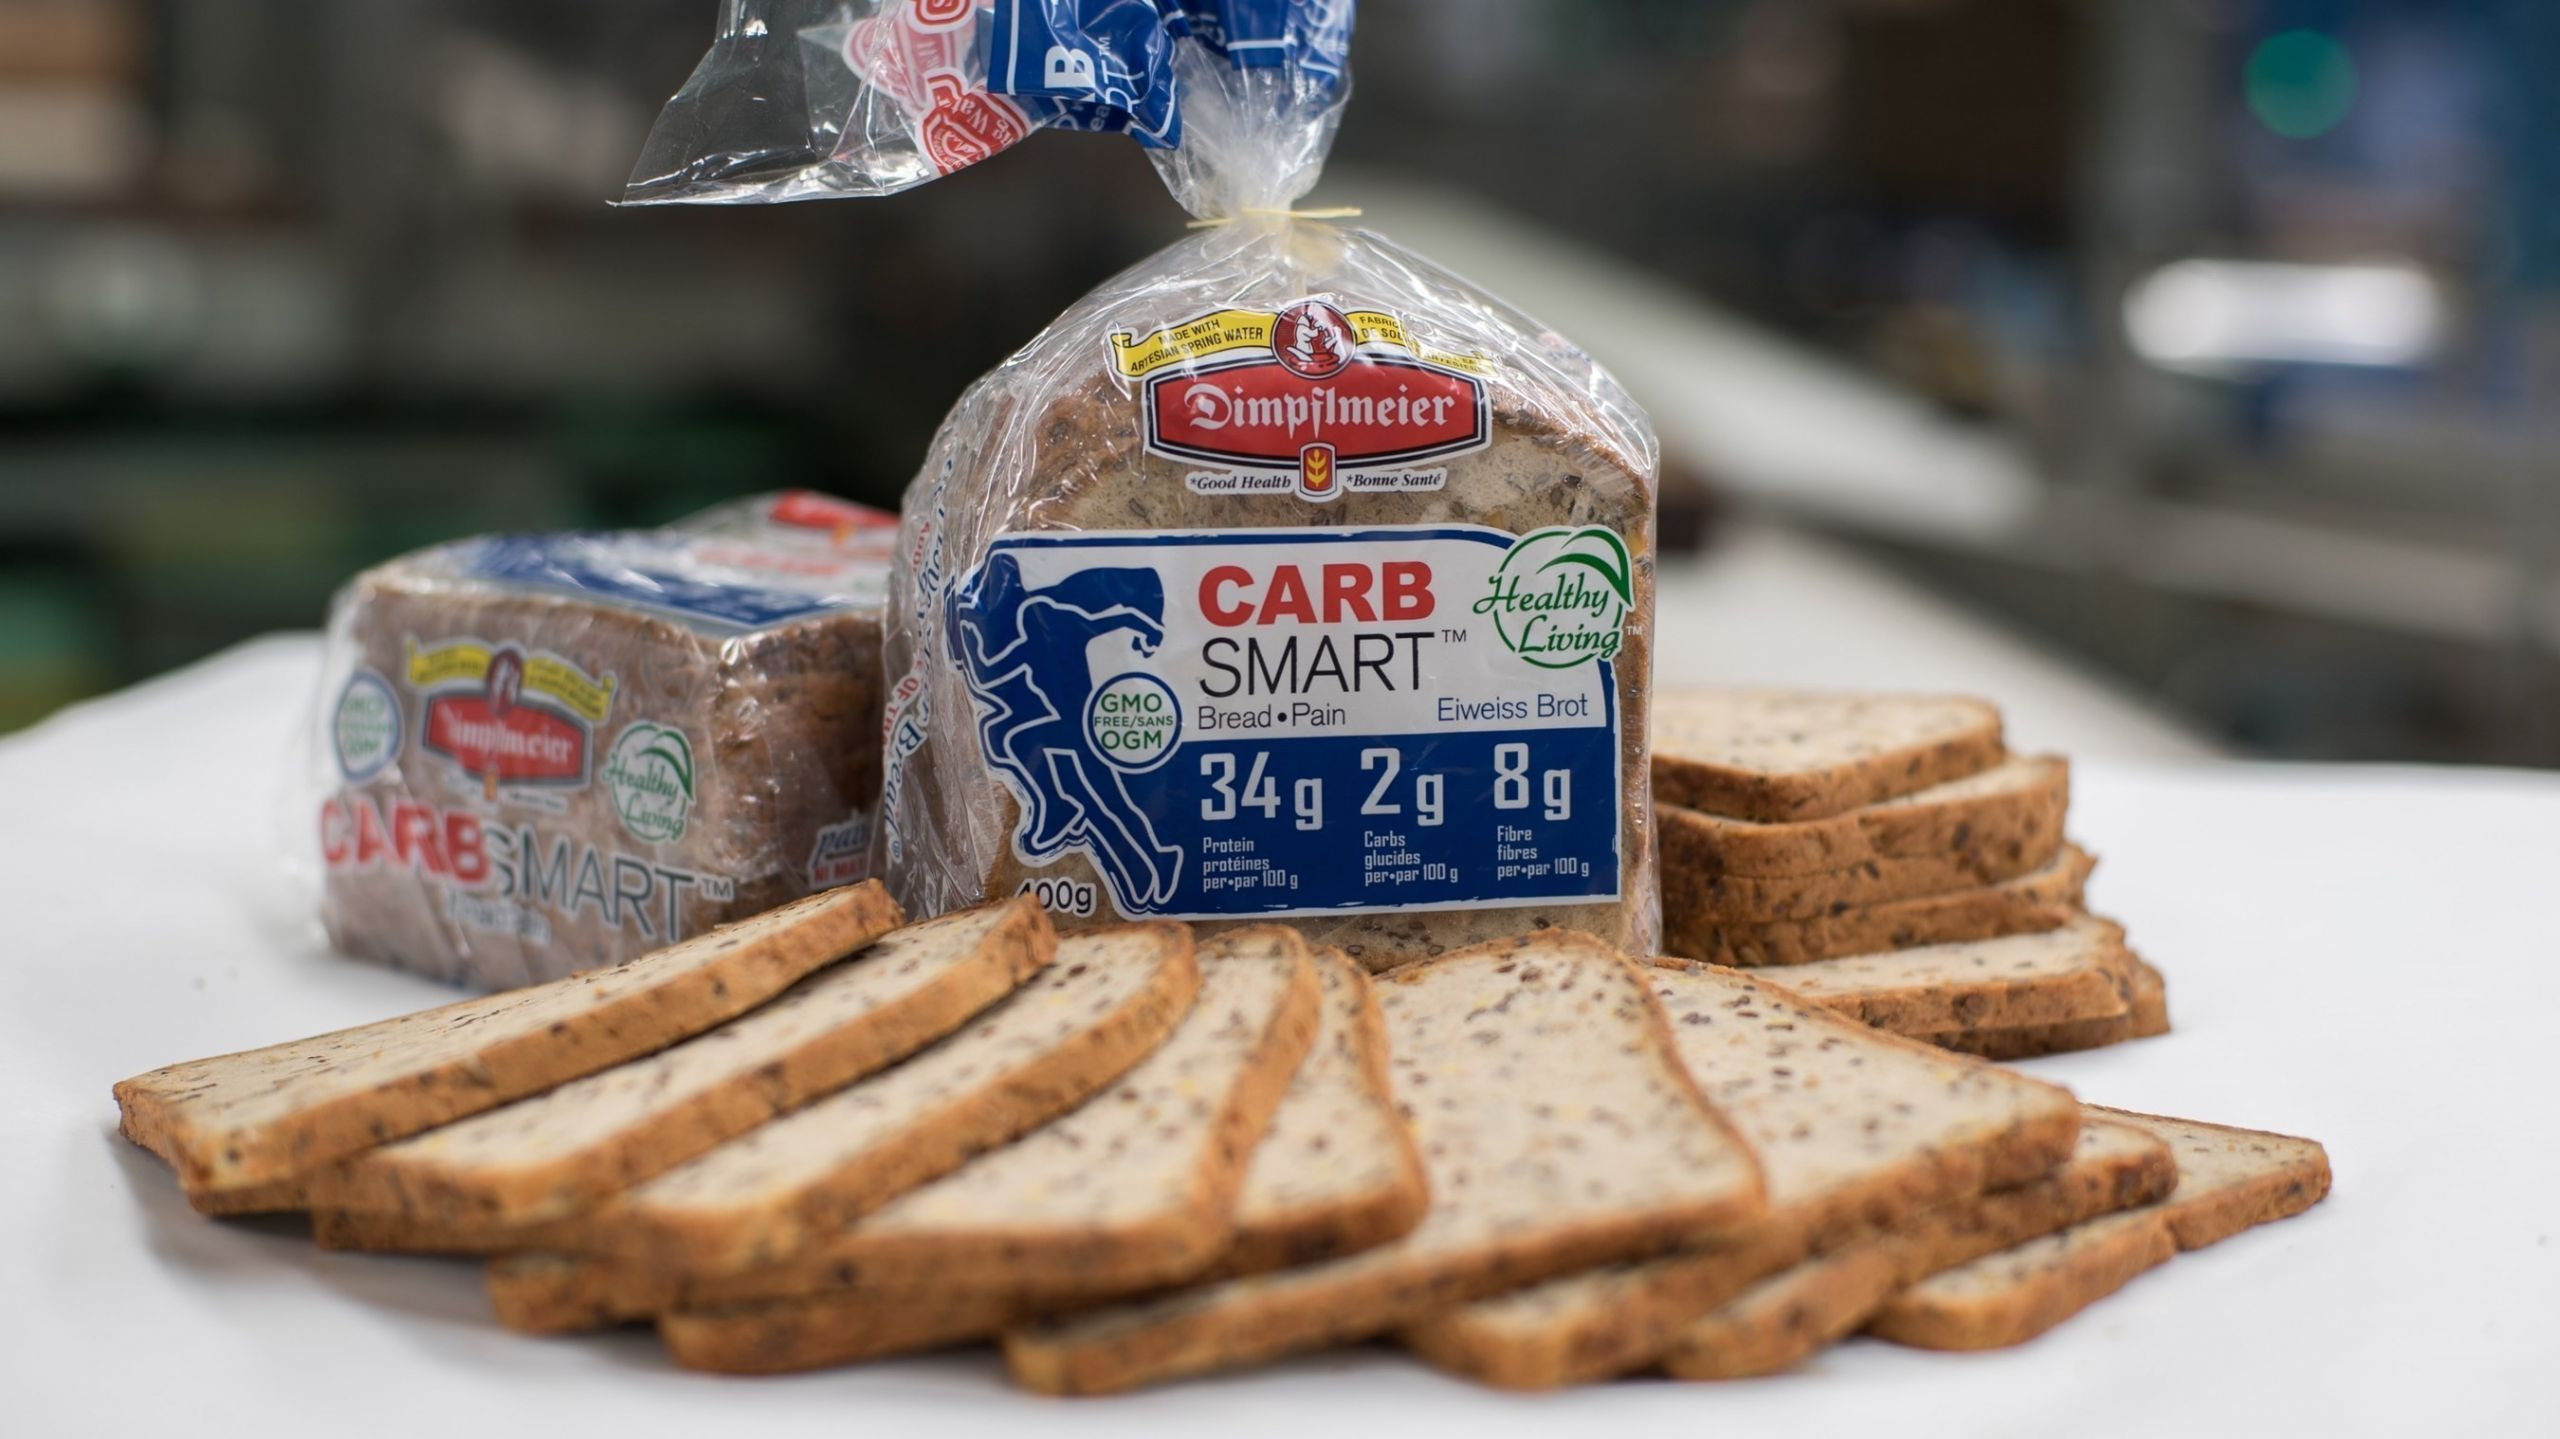 High Fiber Low Carb Bread  Dimpflmeier Bakery Promises Consumers the Holy Grail of